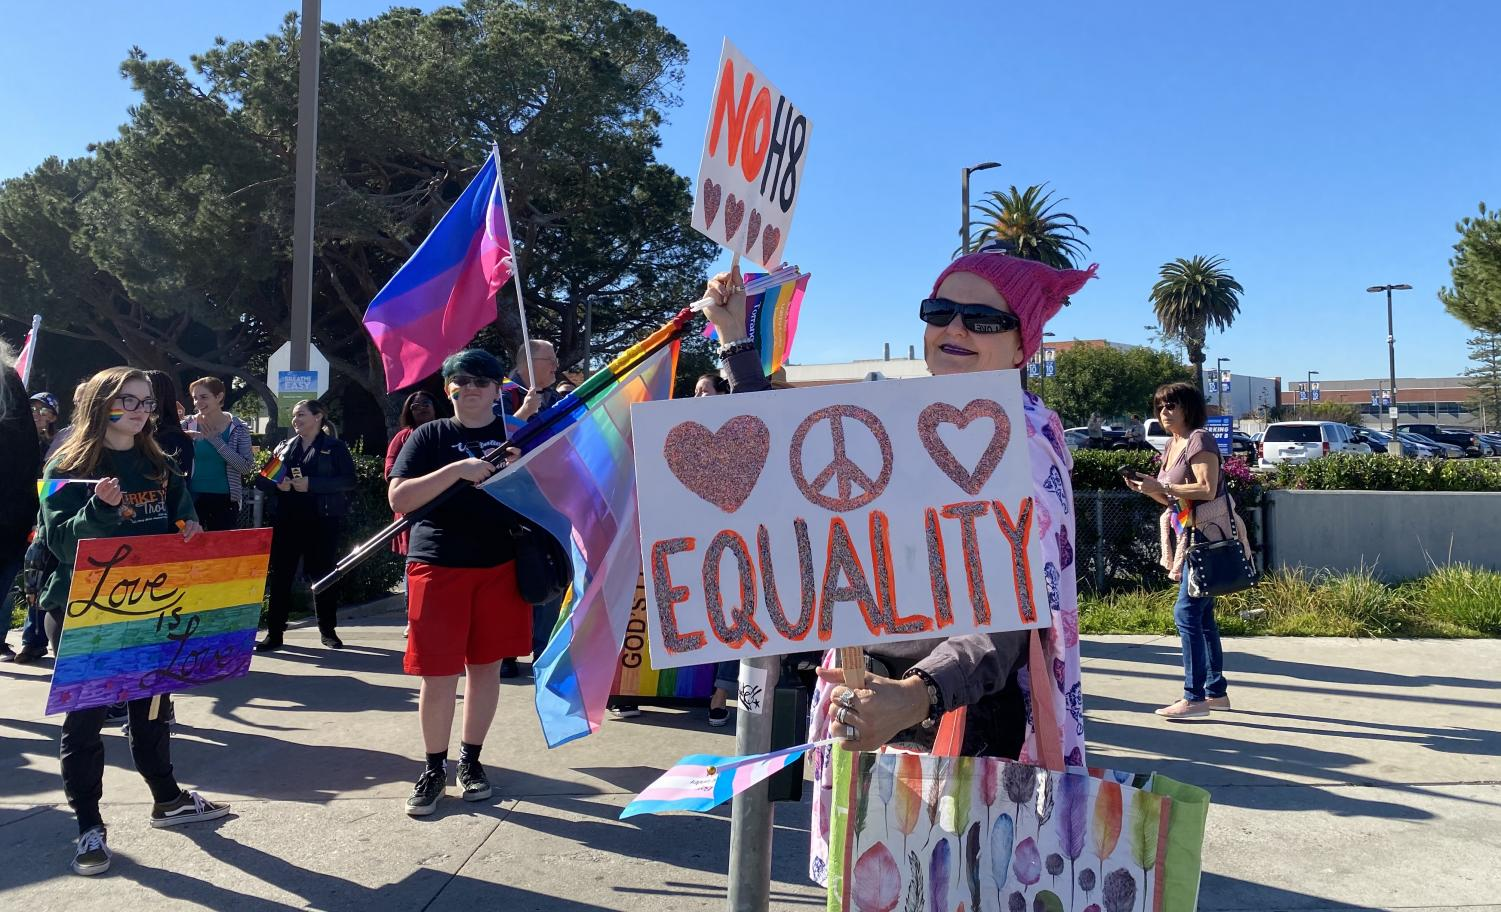 Supporters of LGBTQIA+ community hold rainbow flags and posters promoting love and equality outside El Camino College on Monday, Jan. 6. Counter-protestors overwhelmed the handful of Westboro Baptist Church and anti-gay demonstrators.